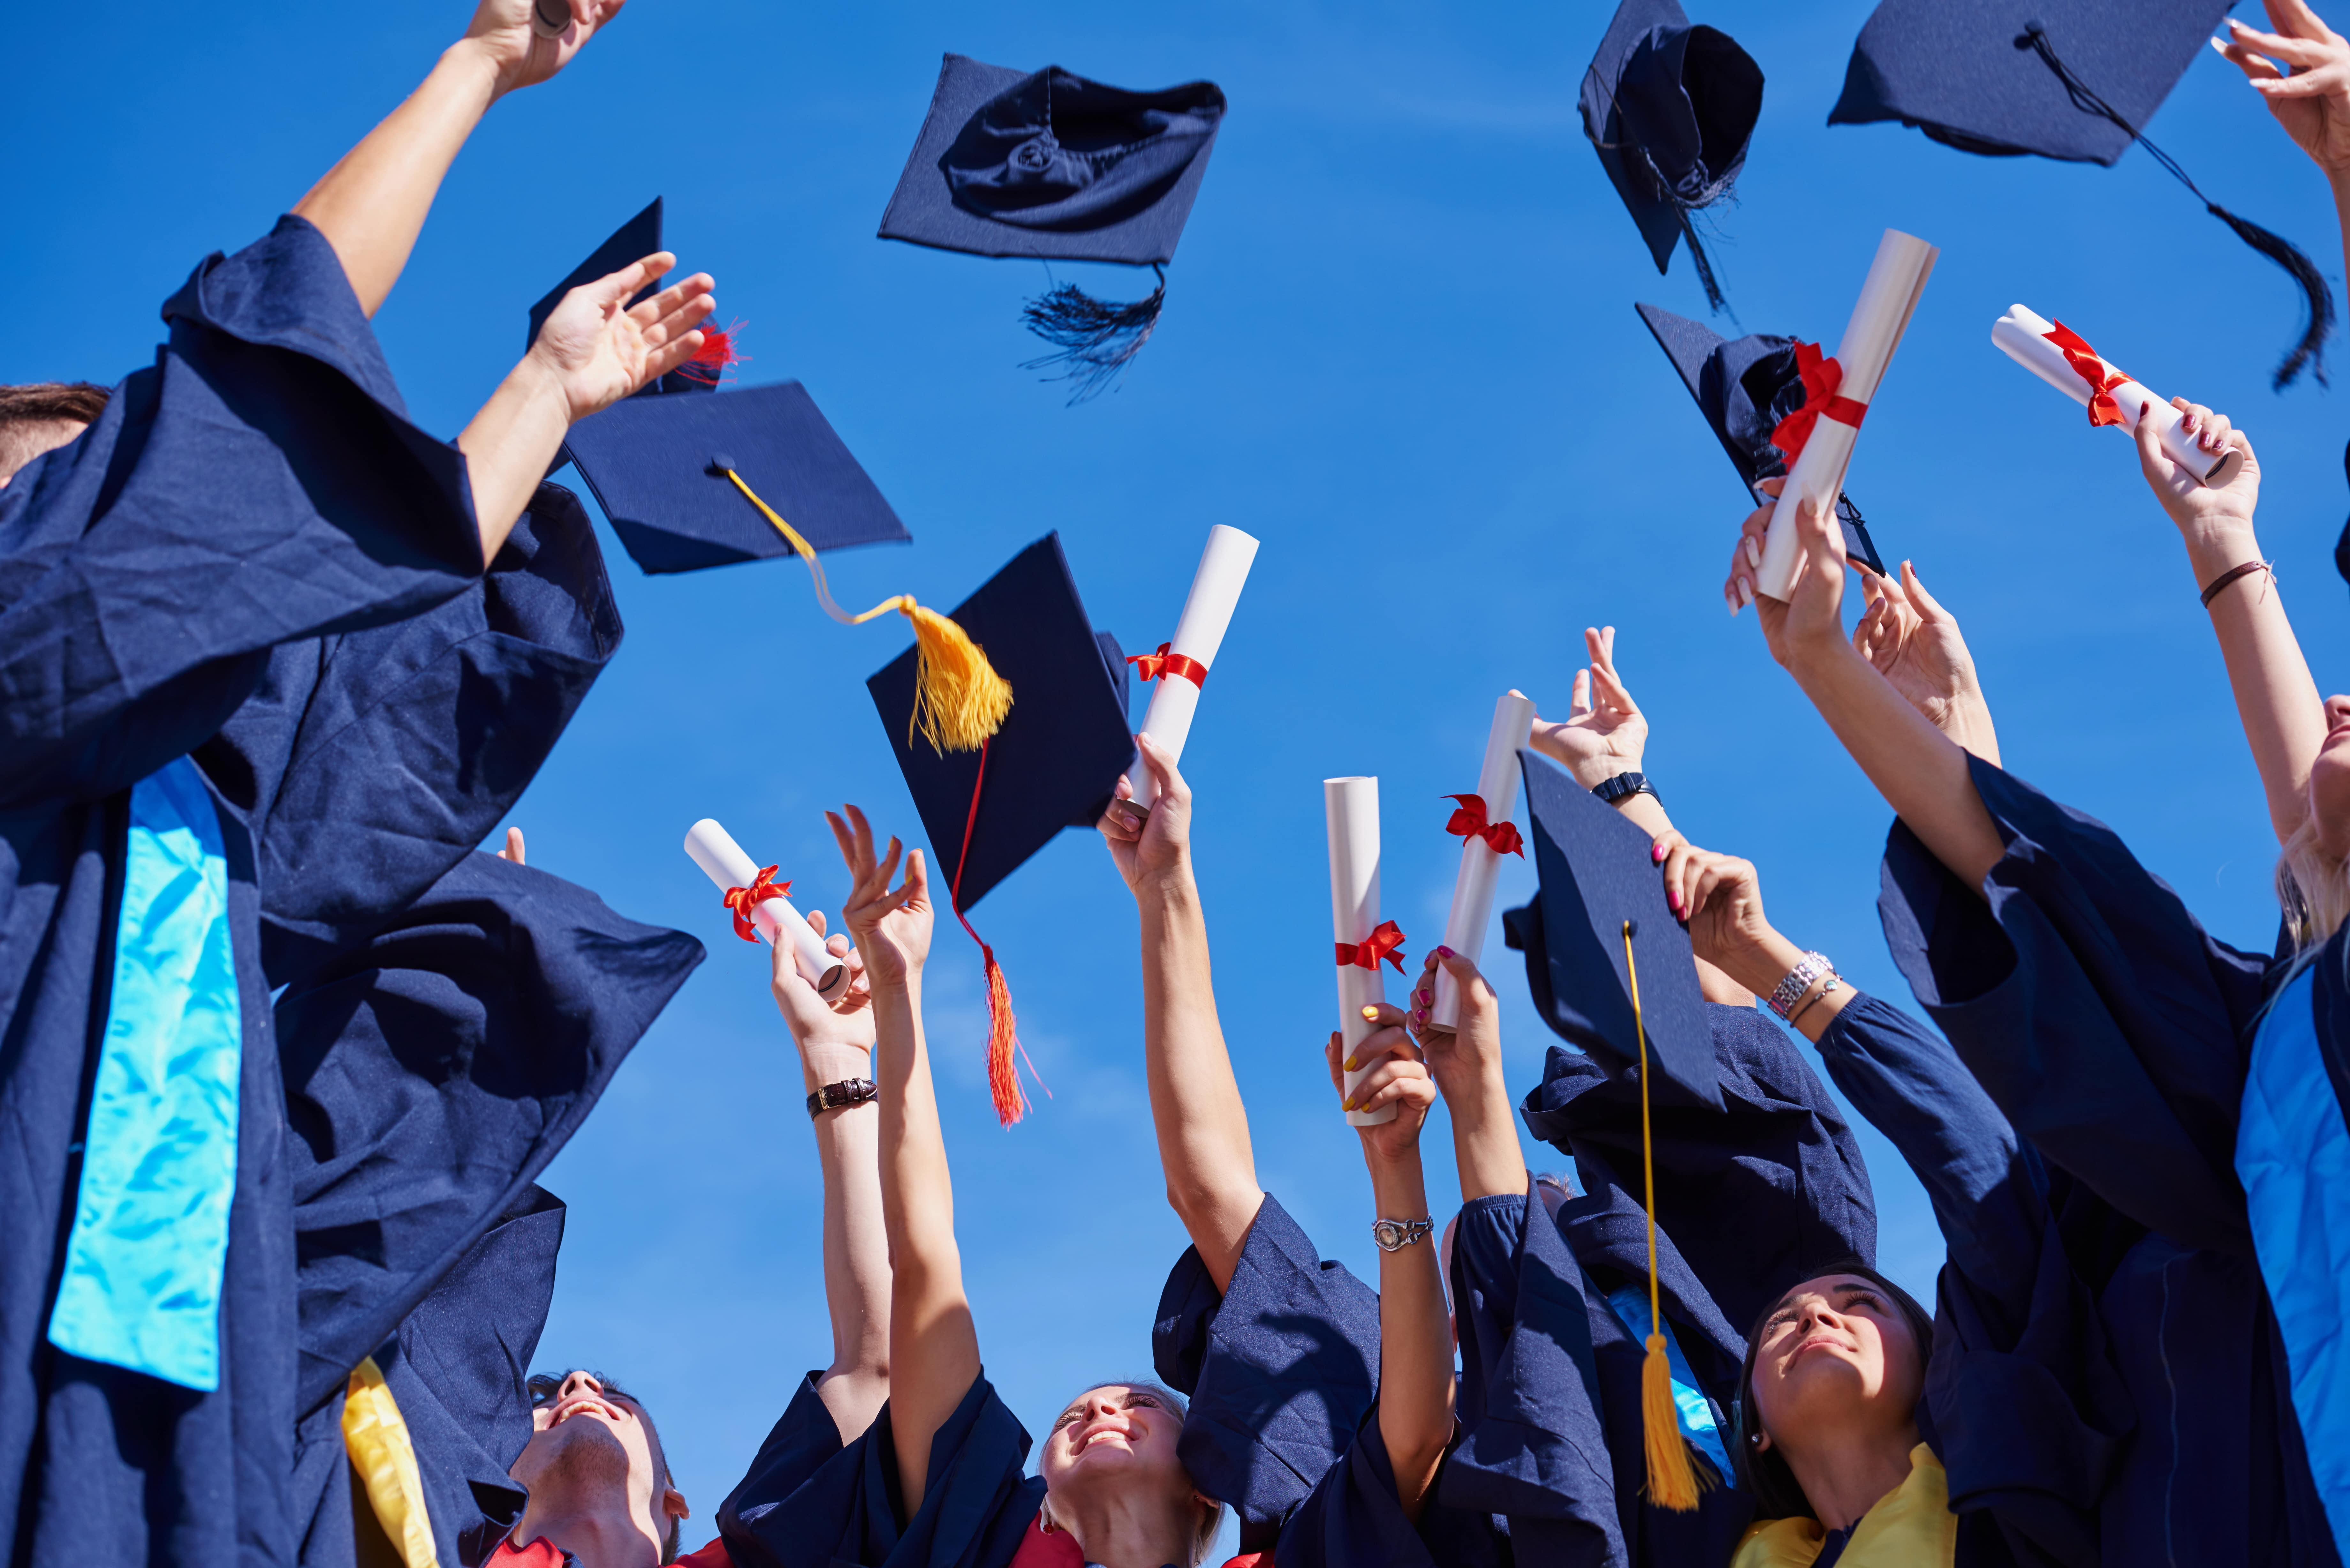 Finishing high school soon? Wondering what to do next?